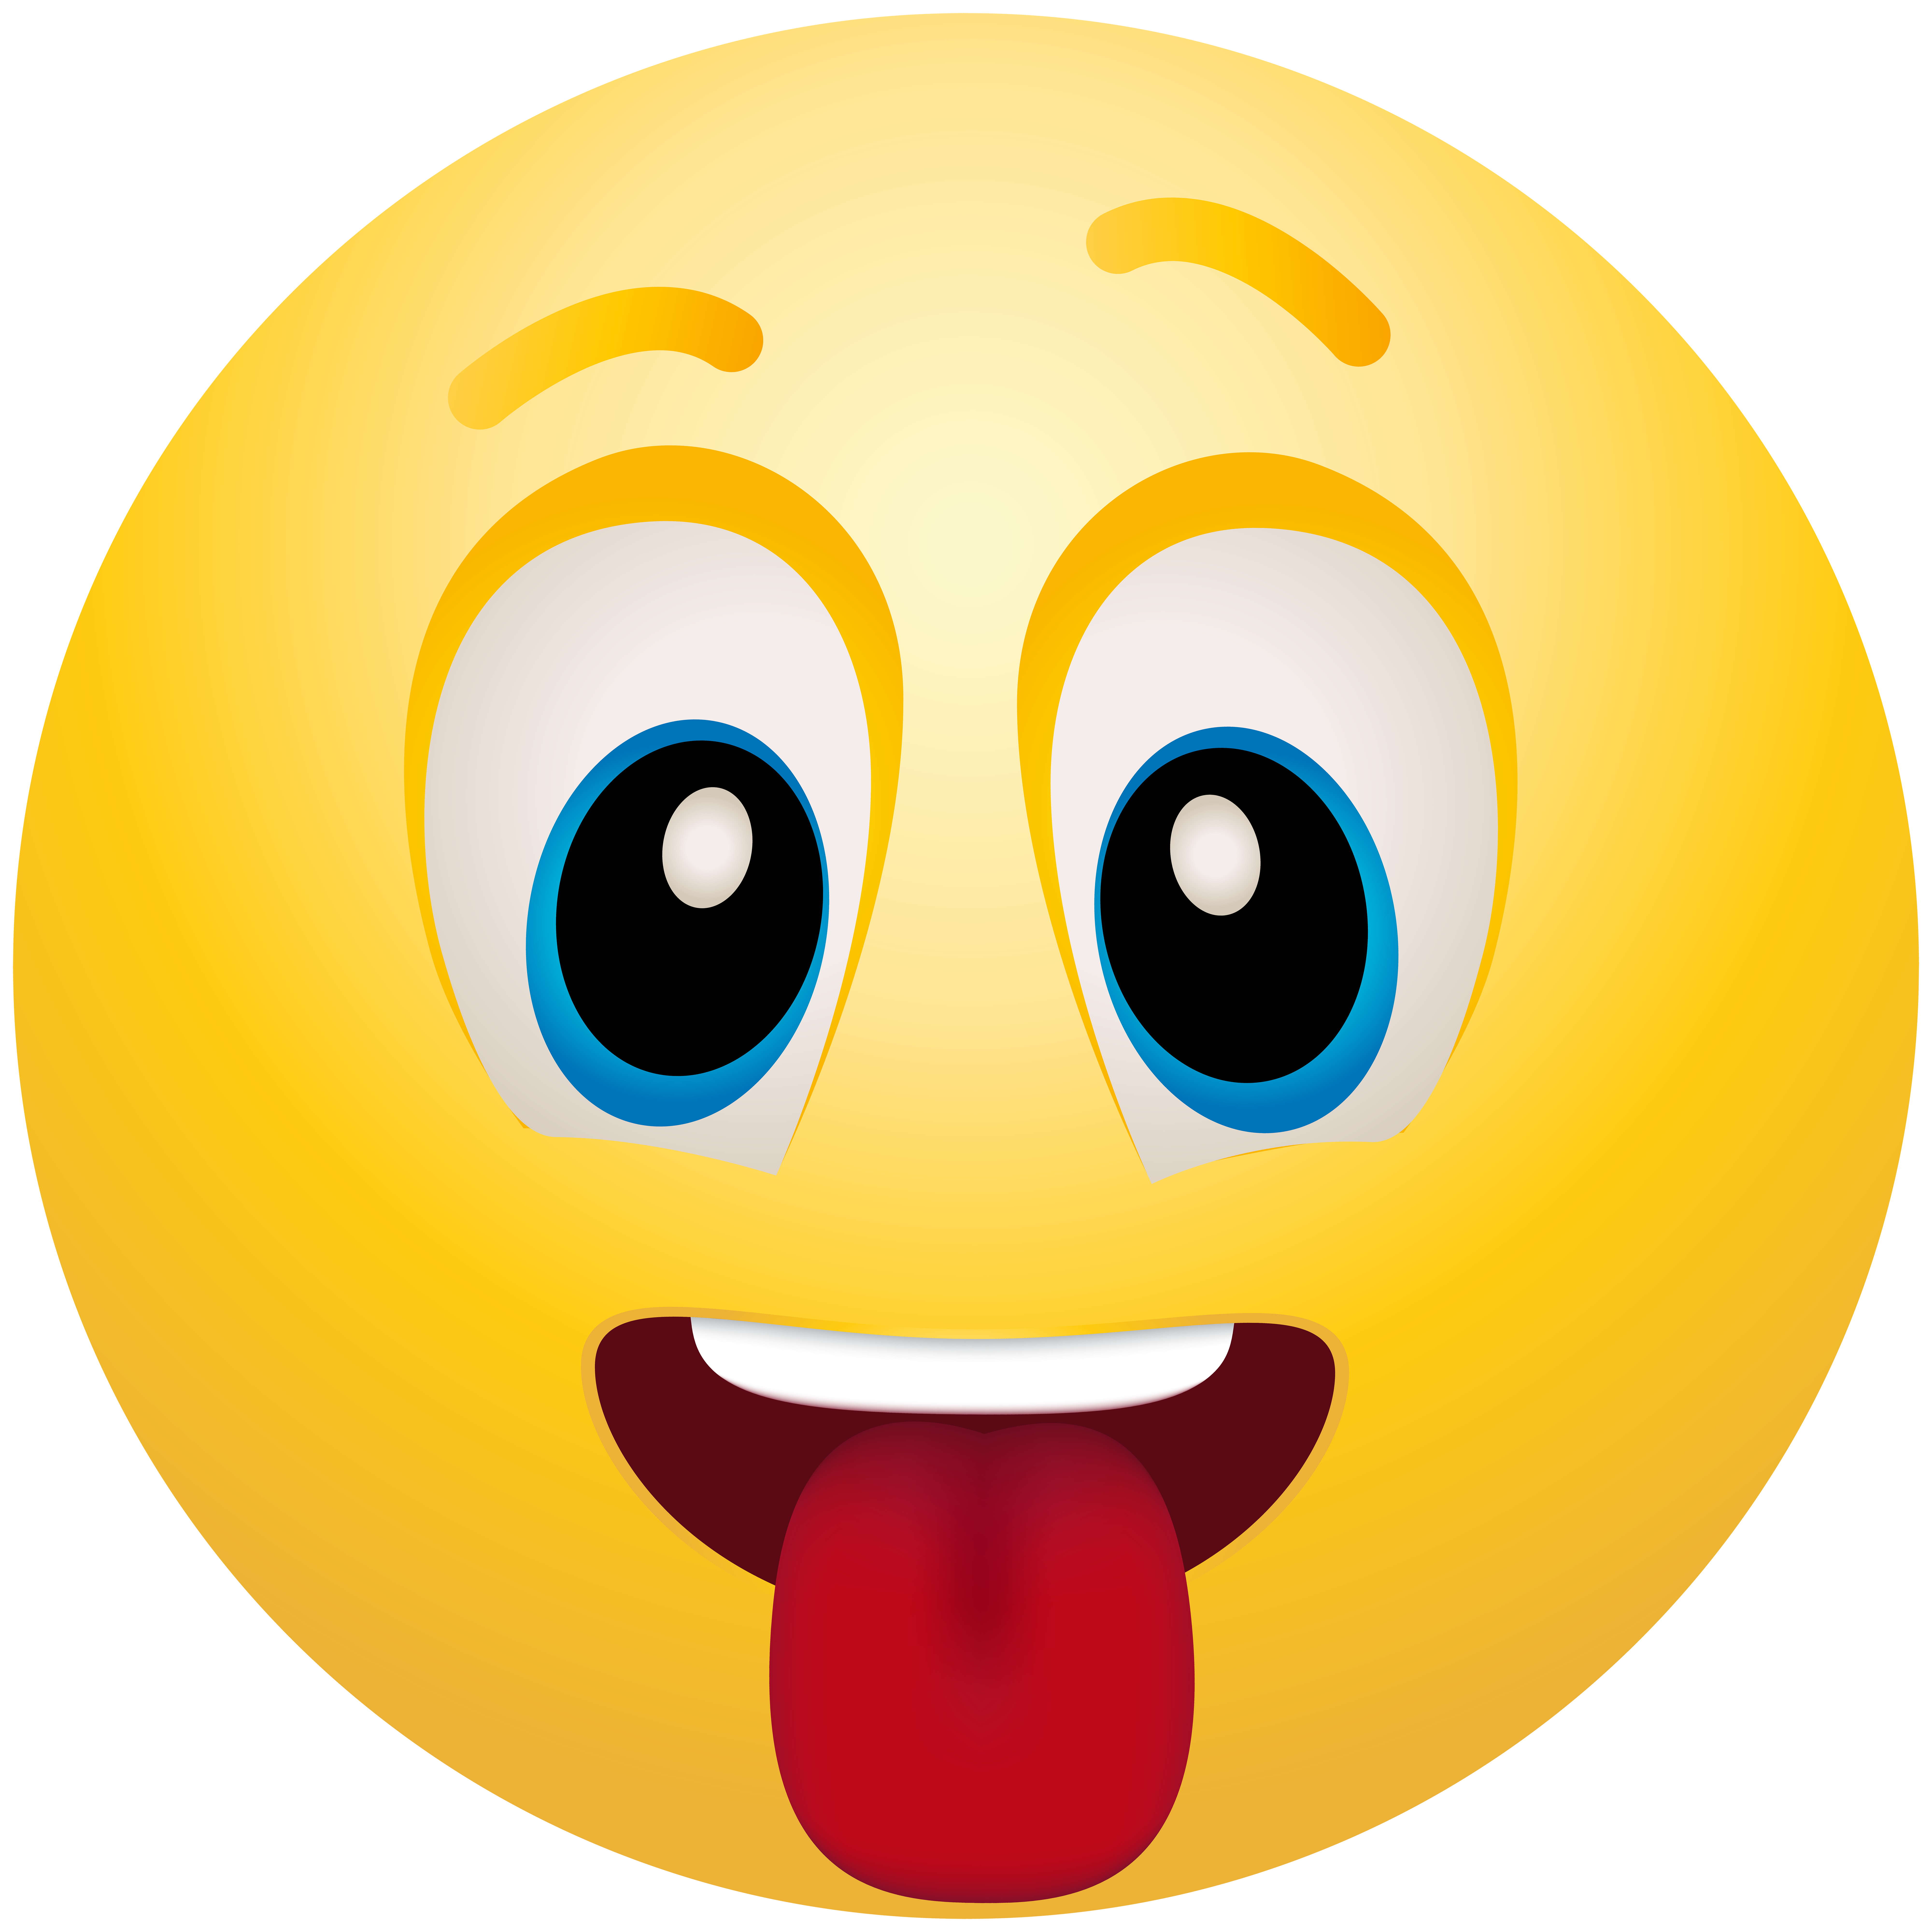 Emoji tongue out png clipart. Emoticon clip art best